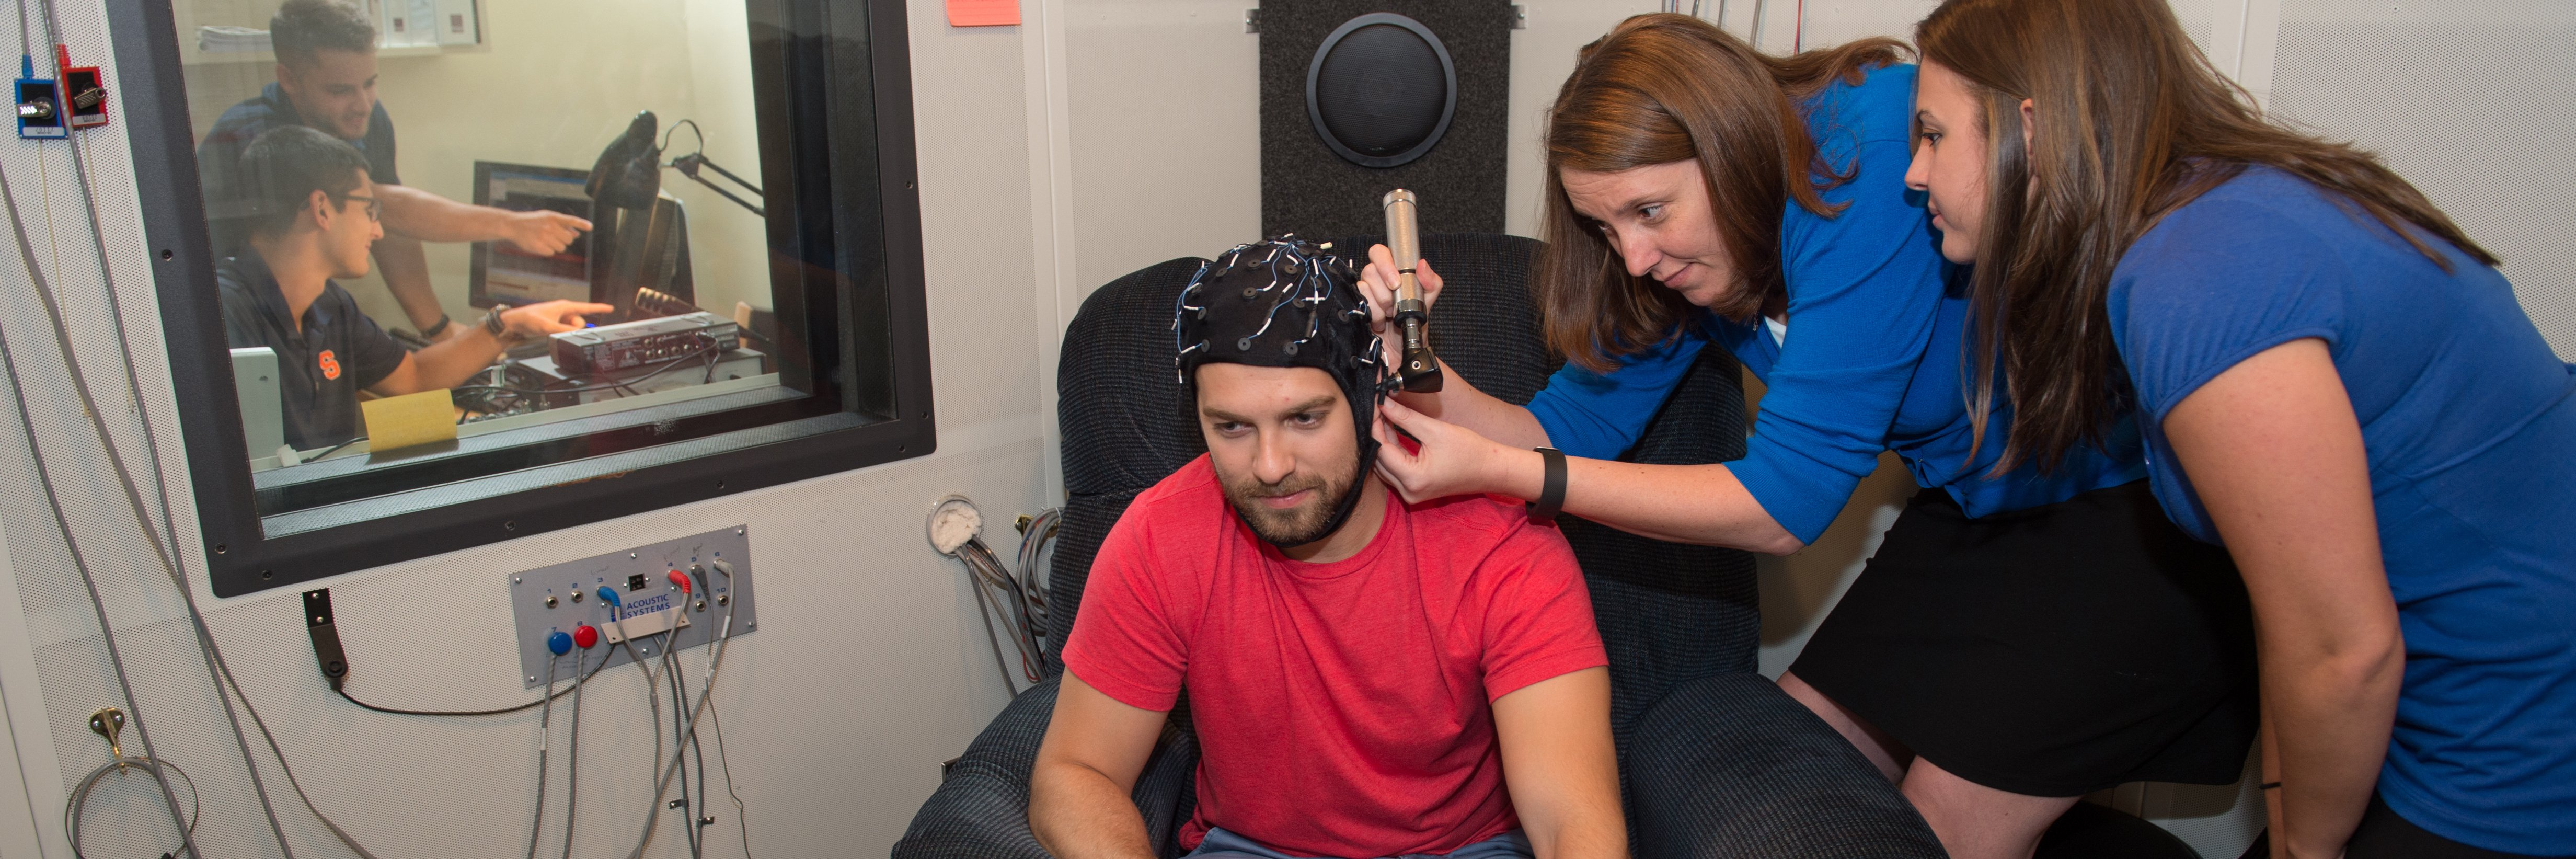 Student demonstration in hearing lab